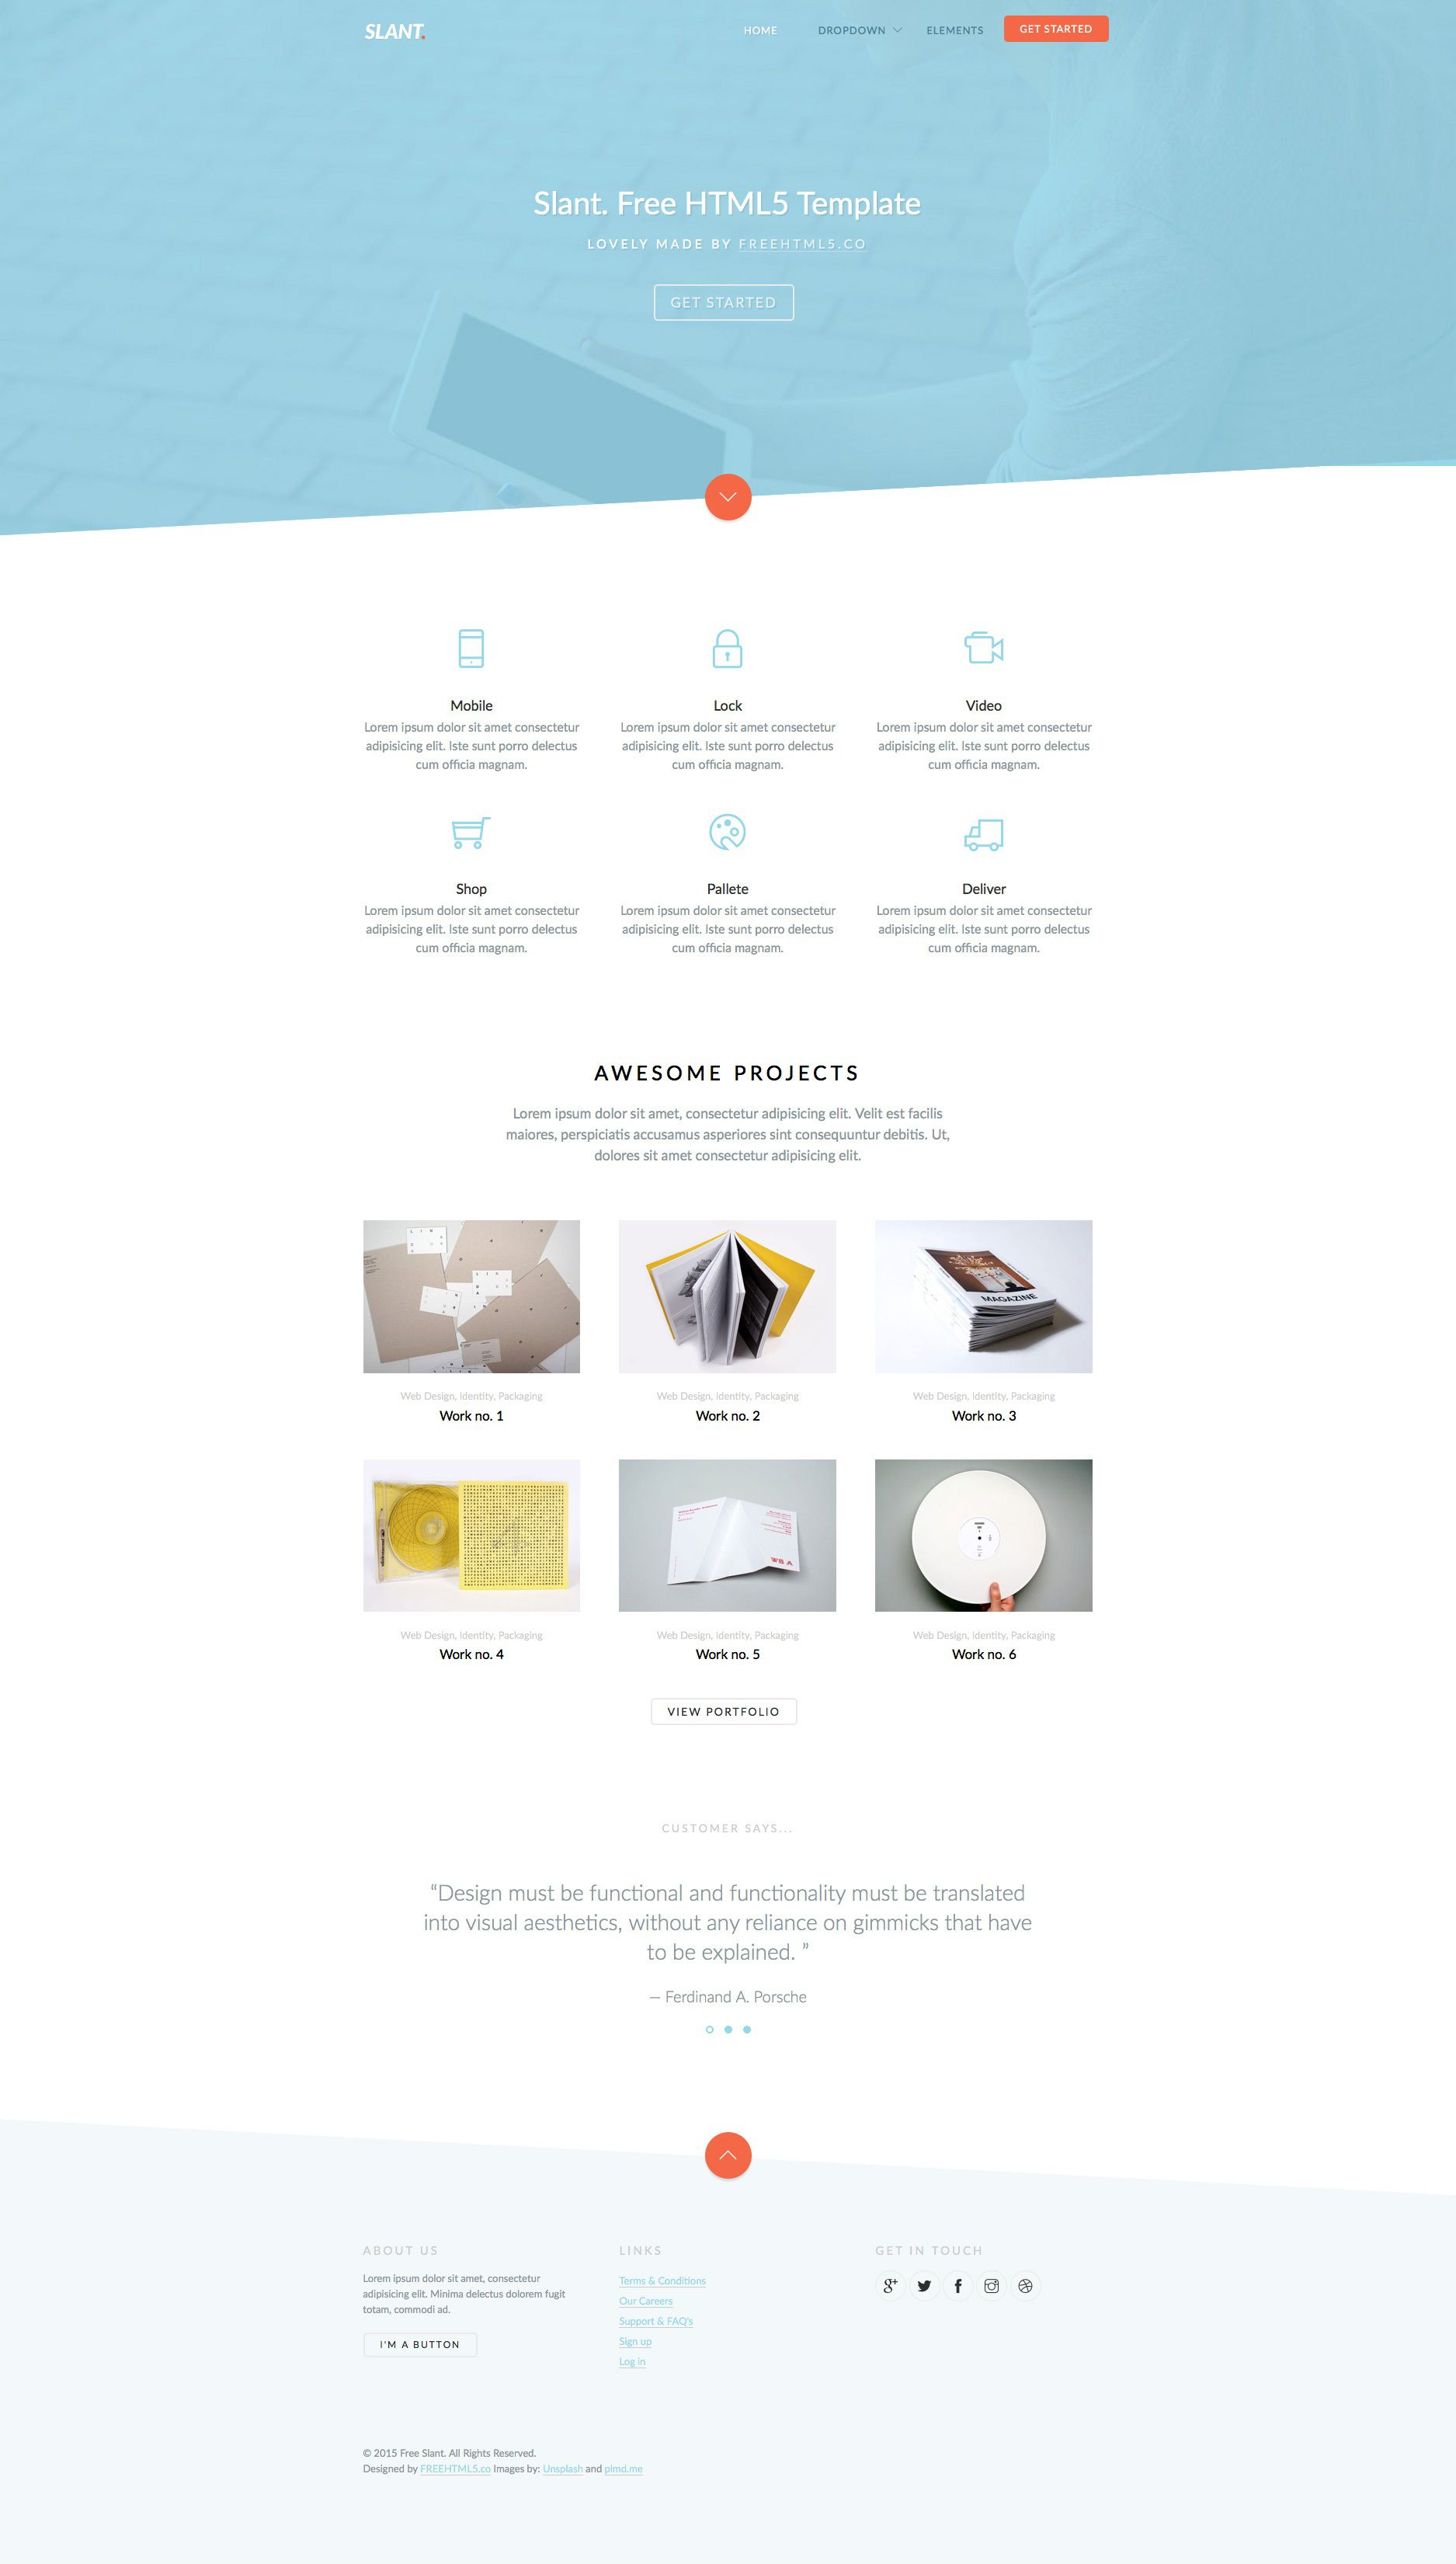 006 Awesome Free Responsive Website Template Download Html And Cs Jquery High Resolution  For It Company